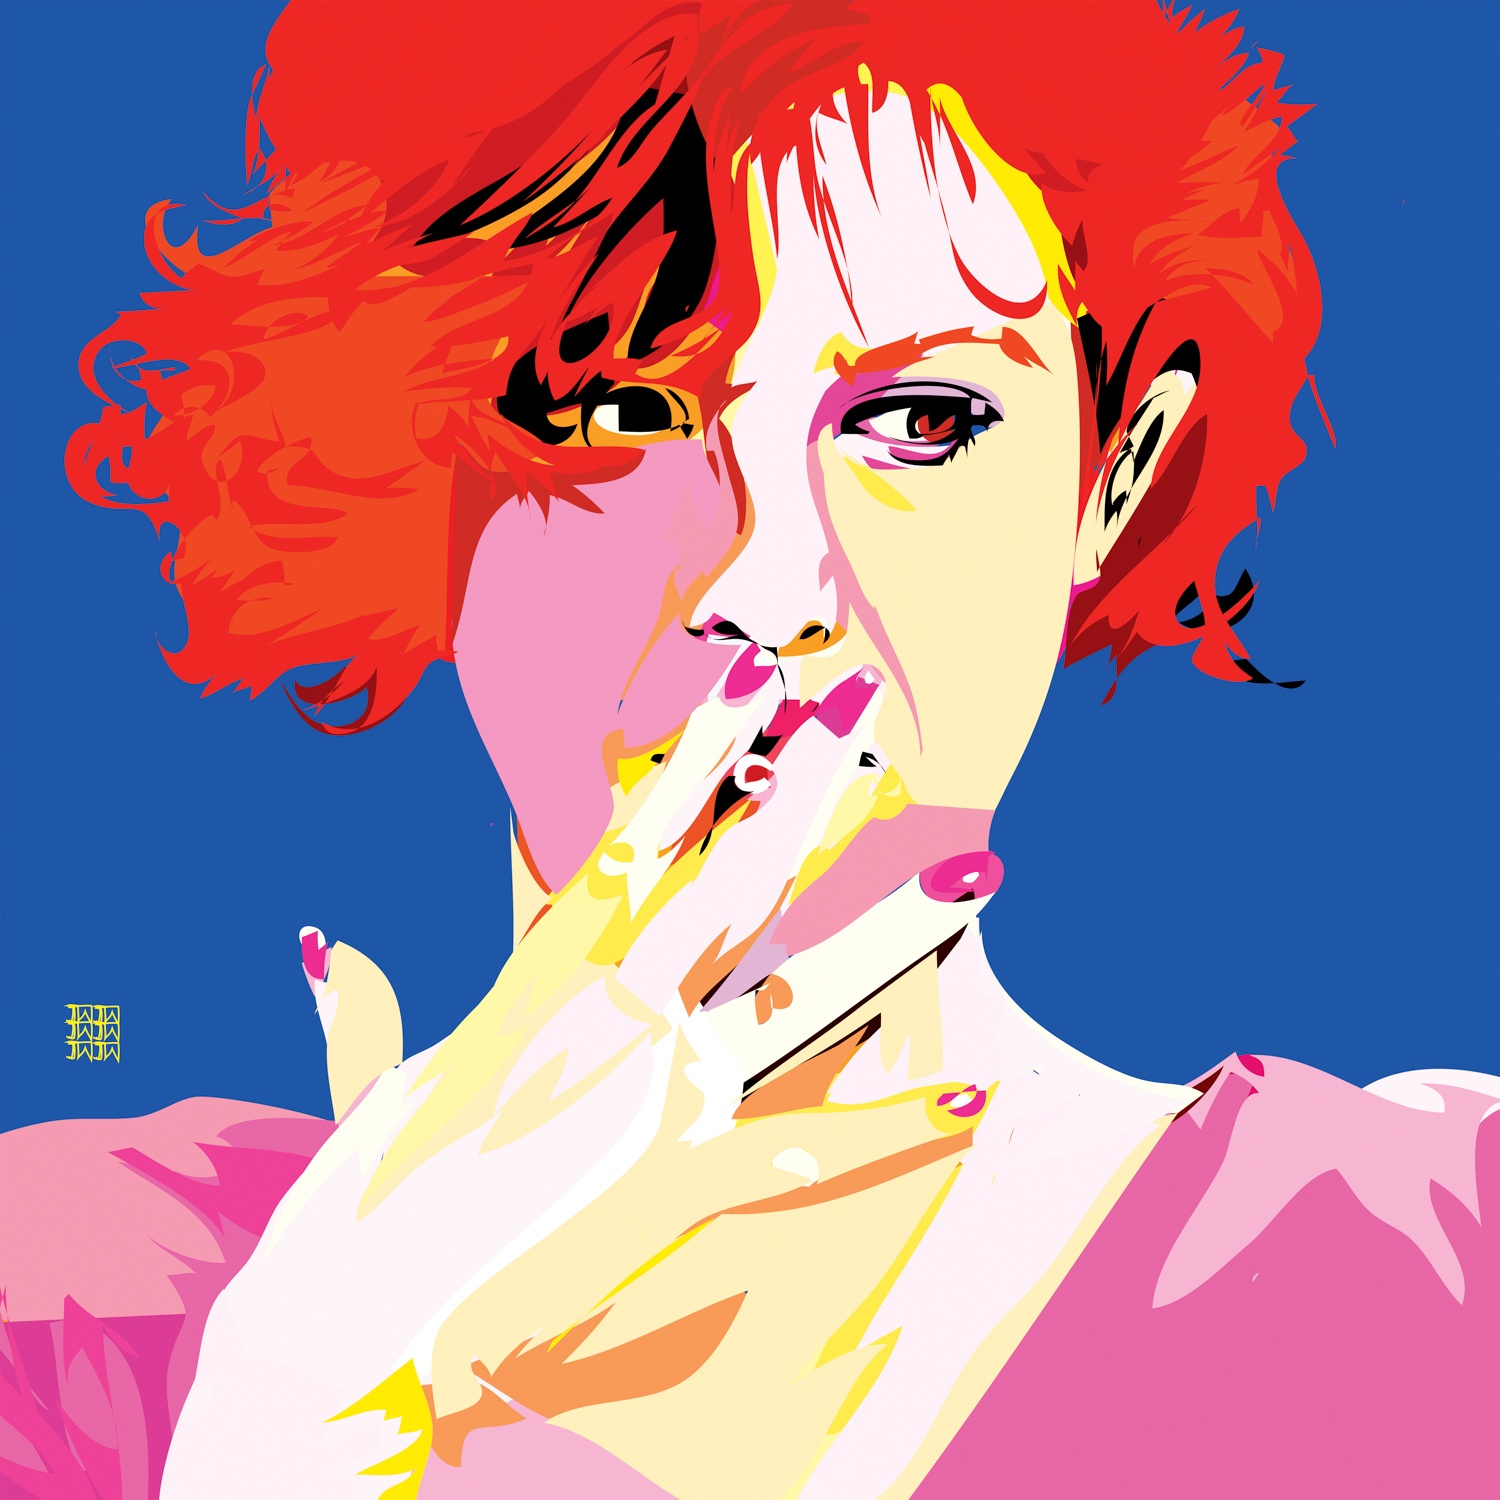 bright parody of Claire Standish character smoking a cigarette against blue backdrop